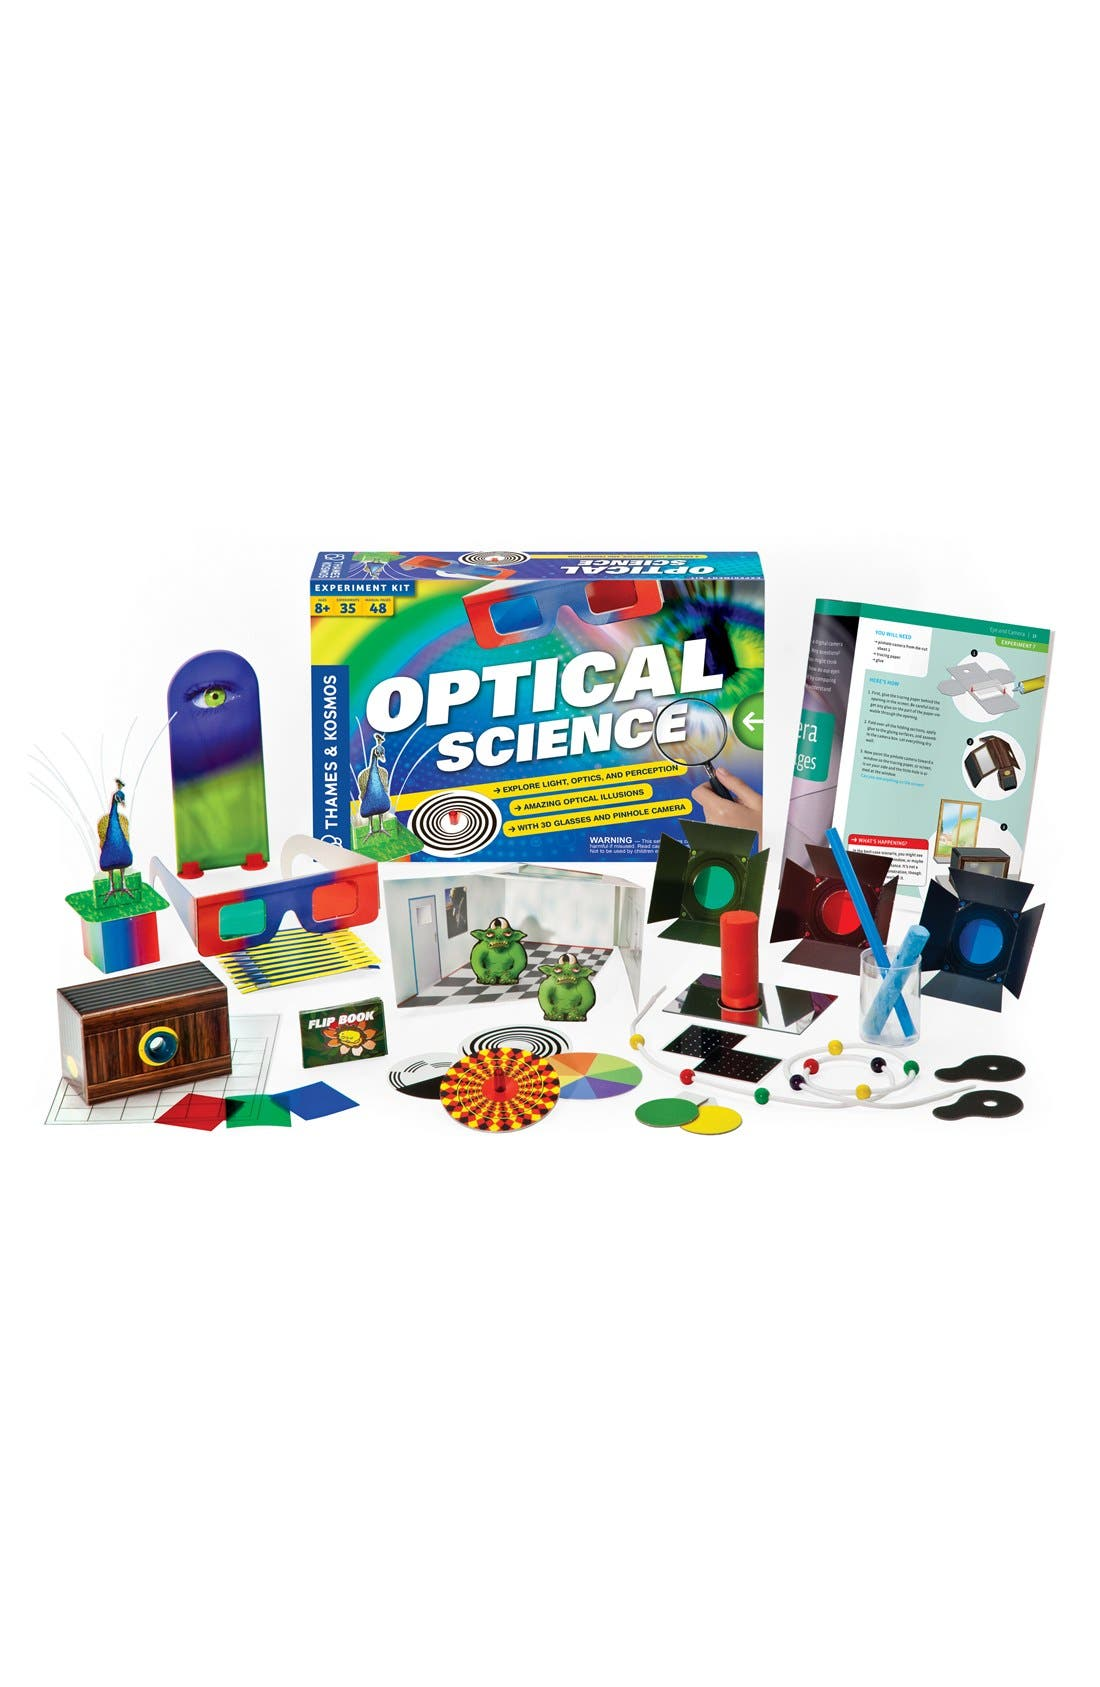 Alternate Image 1 Selected - Thames & Kosmos 'Optical Science 2.0' Experiment Kit